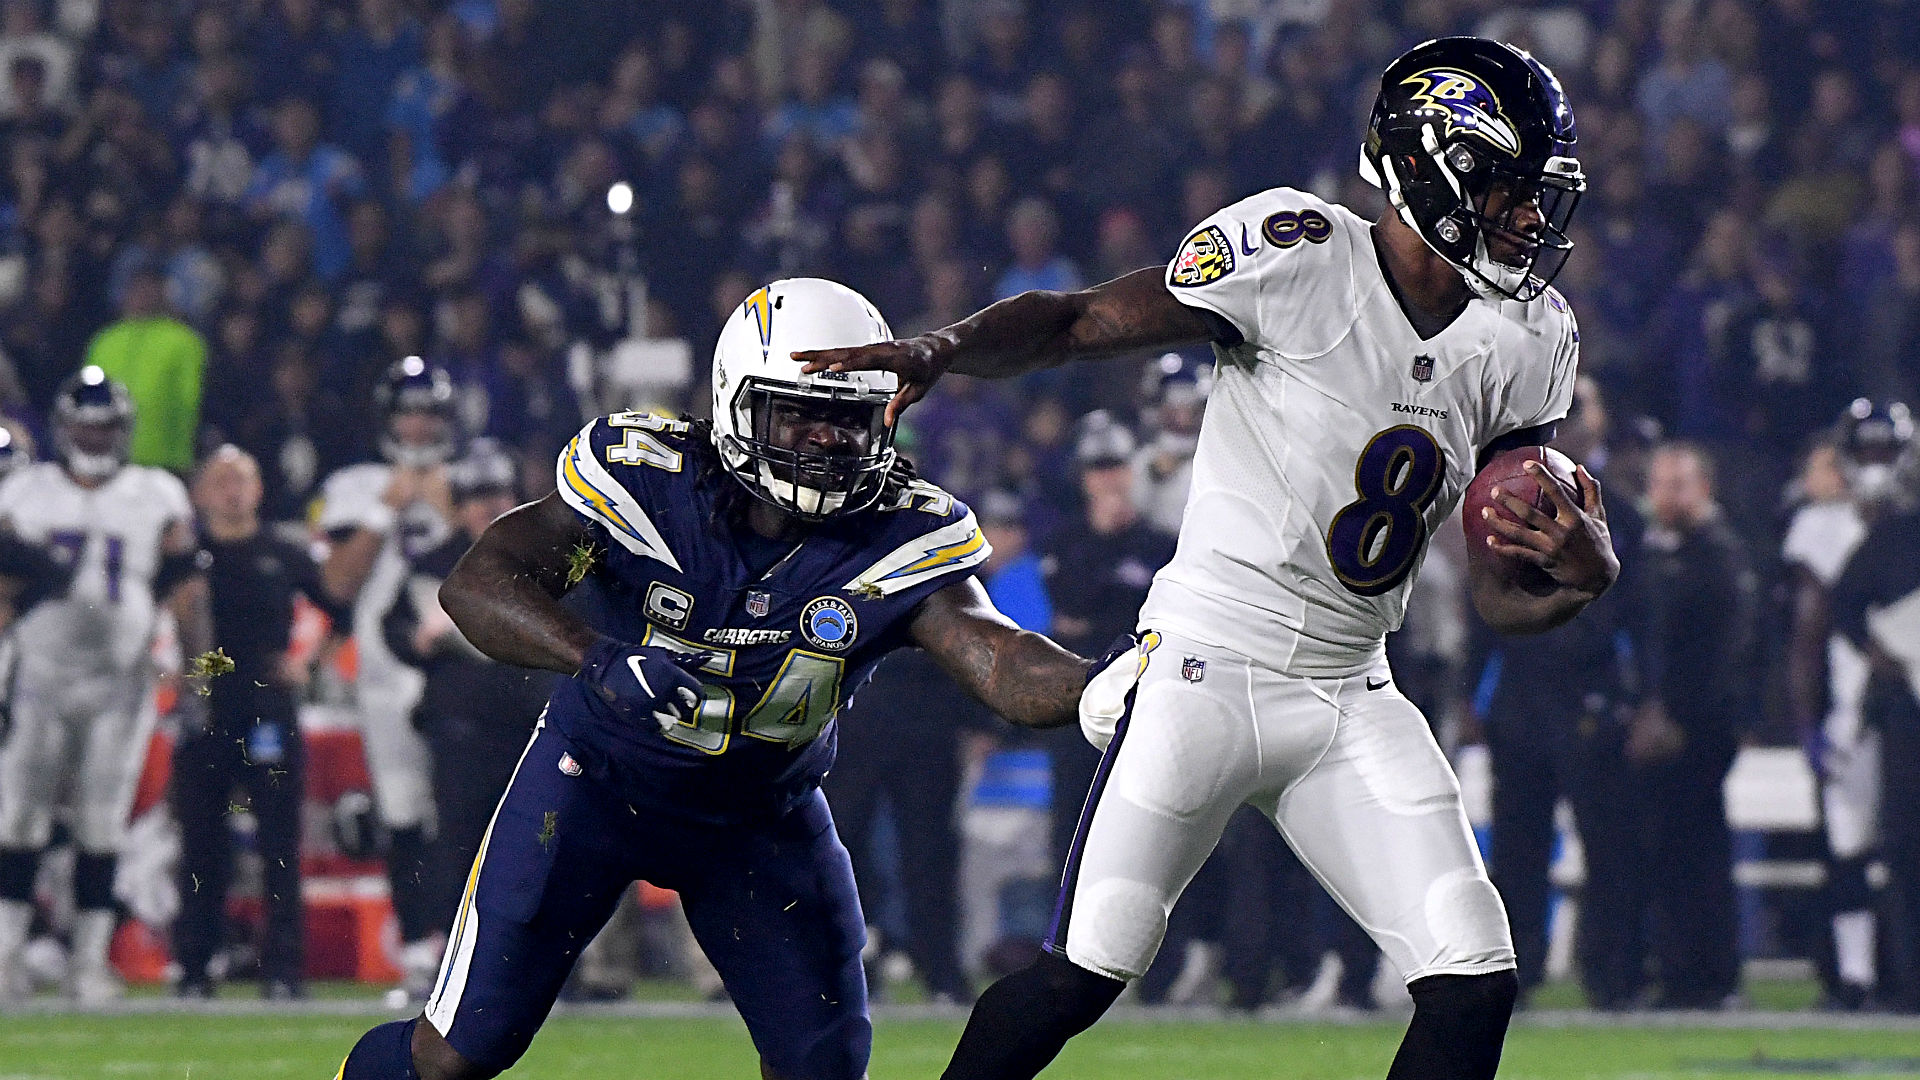 Ravens vs. Chargers results: Score, highlights as Baltimore stays alive in playoff race